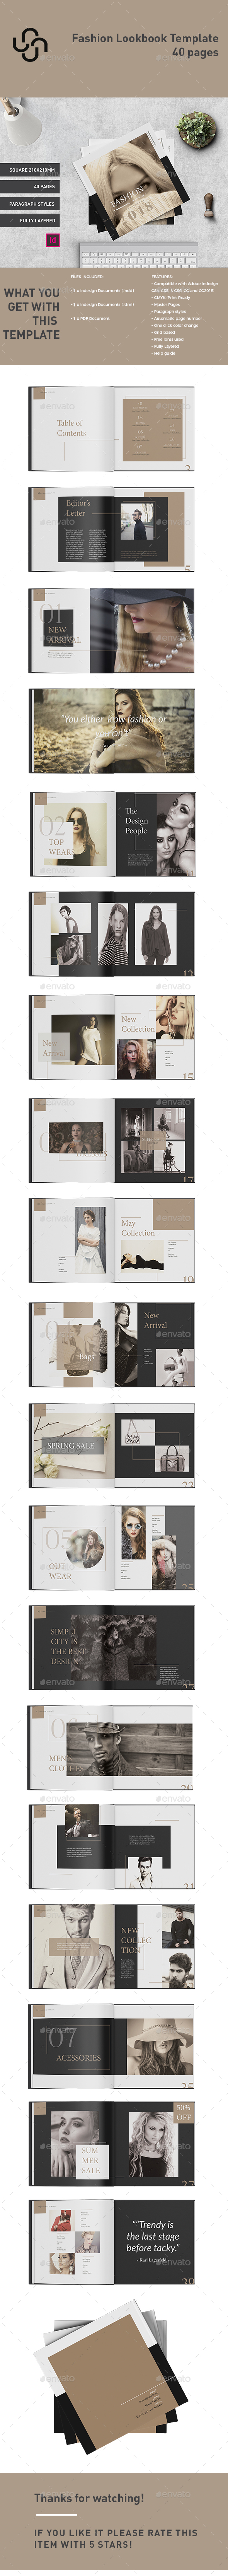 Fashion Lookbook Template - Magazines Print Templates